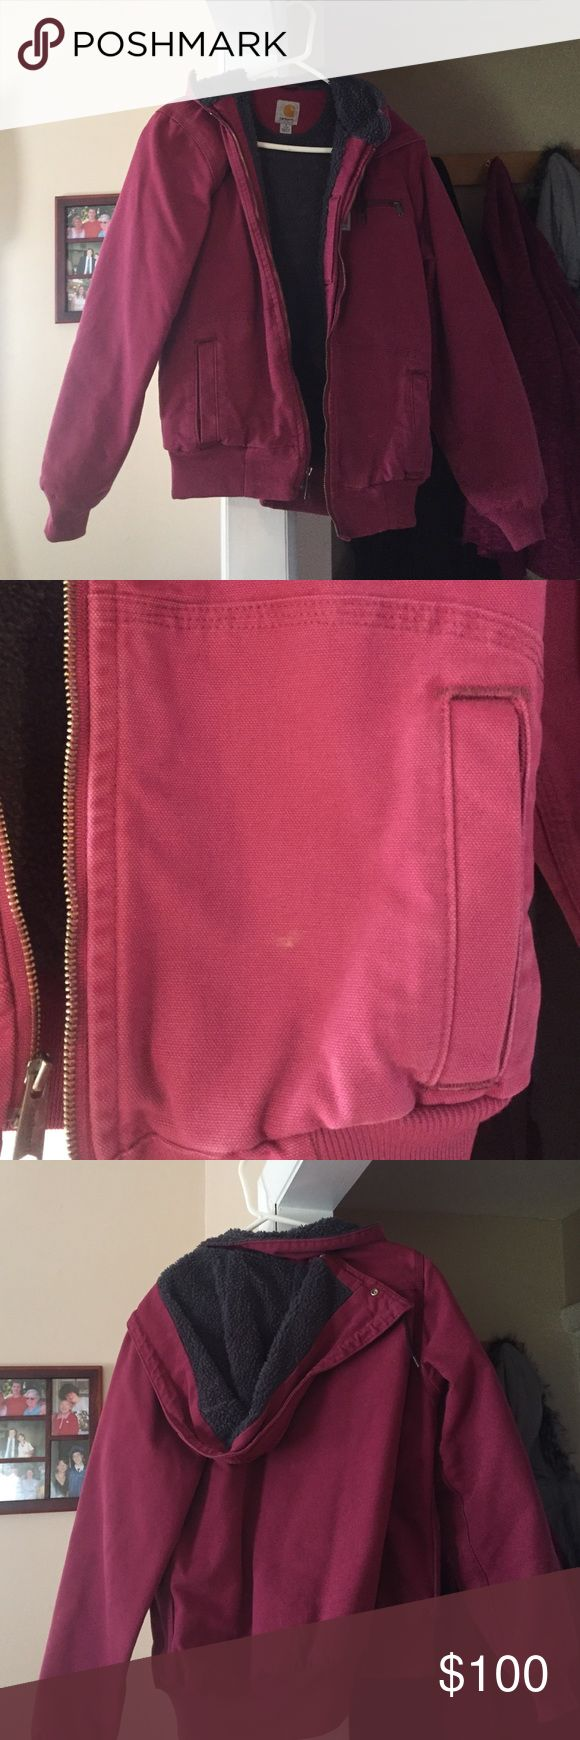 GREAT condition women's carhartt jacket Pink carhartt jacket; women's size small 4/6; only worn a couple times so in GREAT condition; small mark seen in pic #2 on pocket but could easily be cleaned off; soft furry inside and hood; willing to take reasonable offers; maybe worn twice Carhartt Jackets & Coats